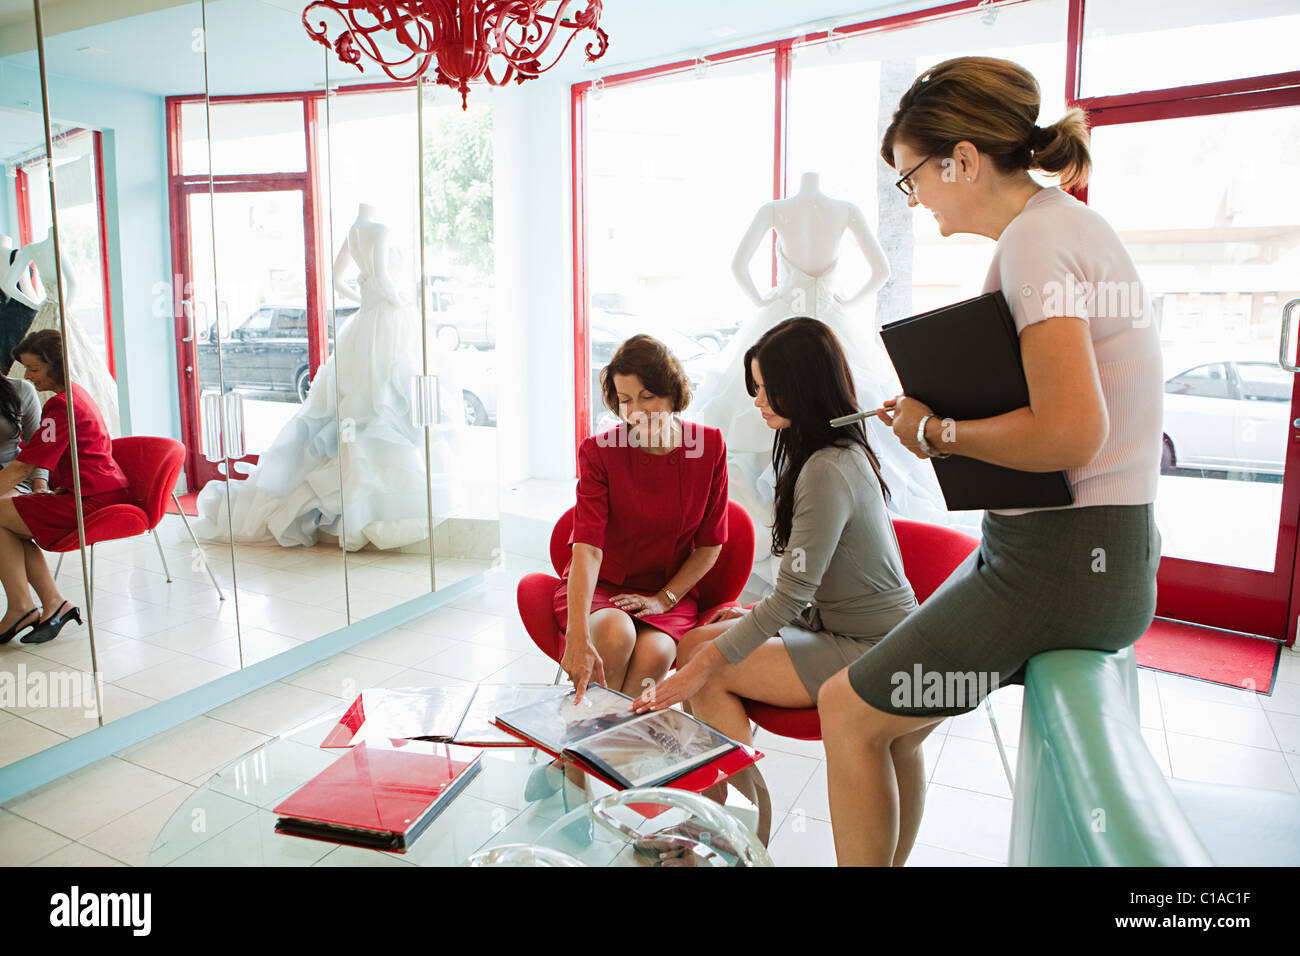 Mother and daughter talking to wedding dress designer - Stock Image